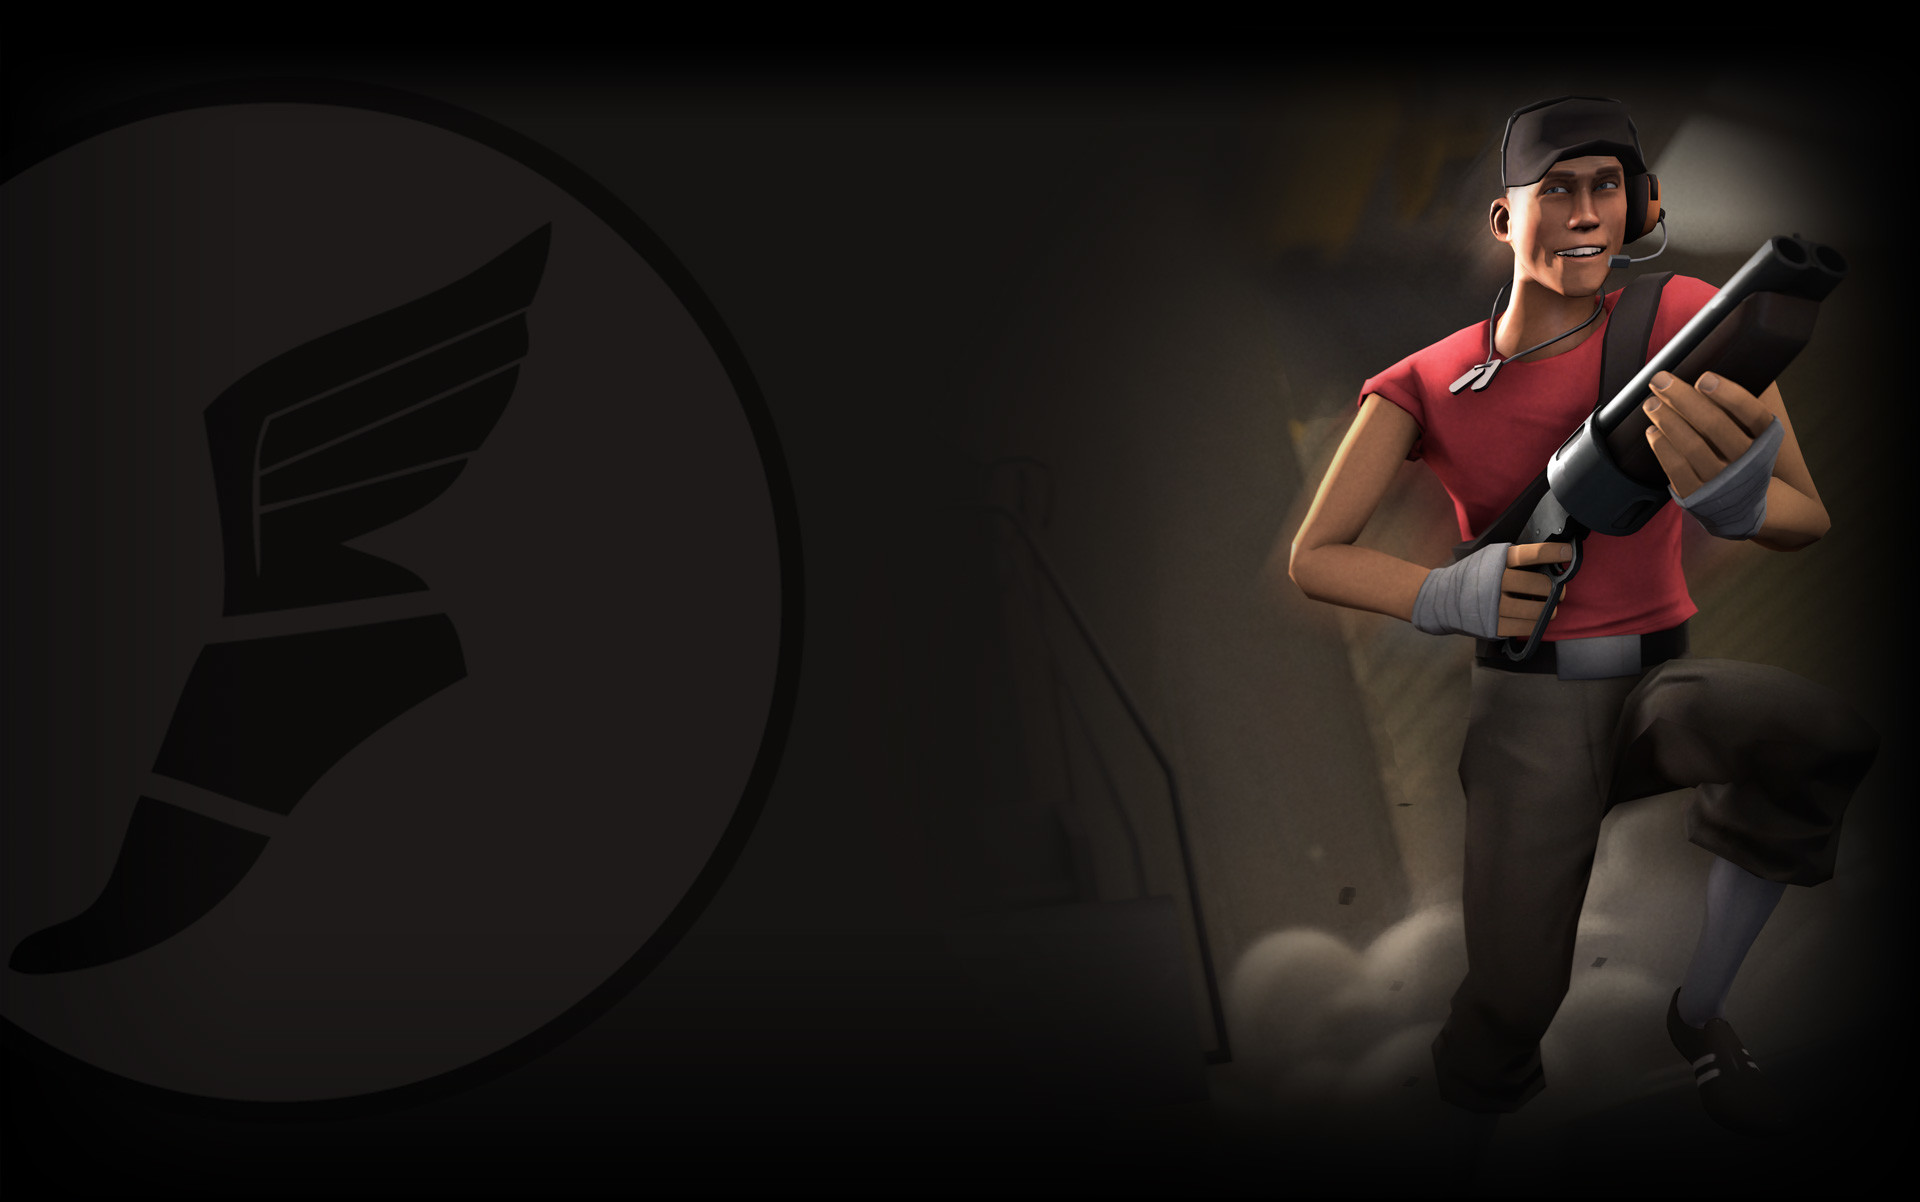 Team Fortress 2 Profile Background. View Full Size